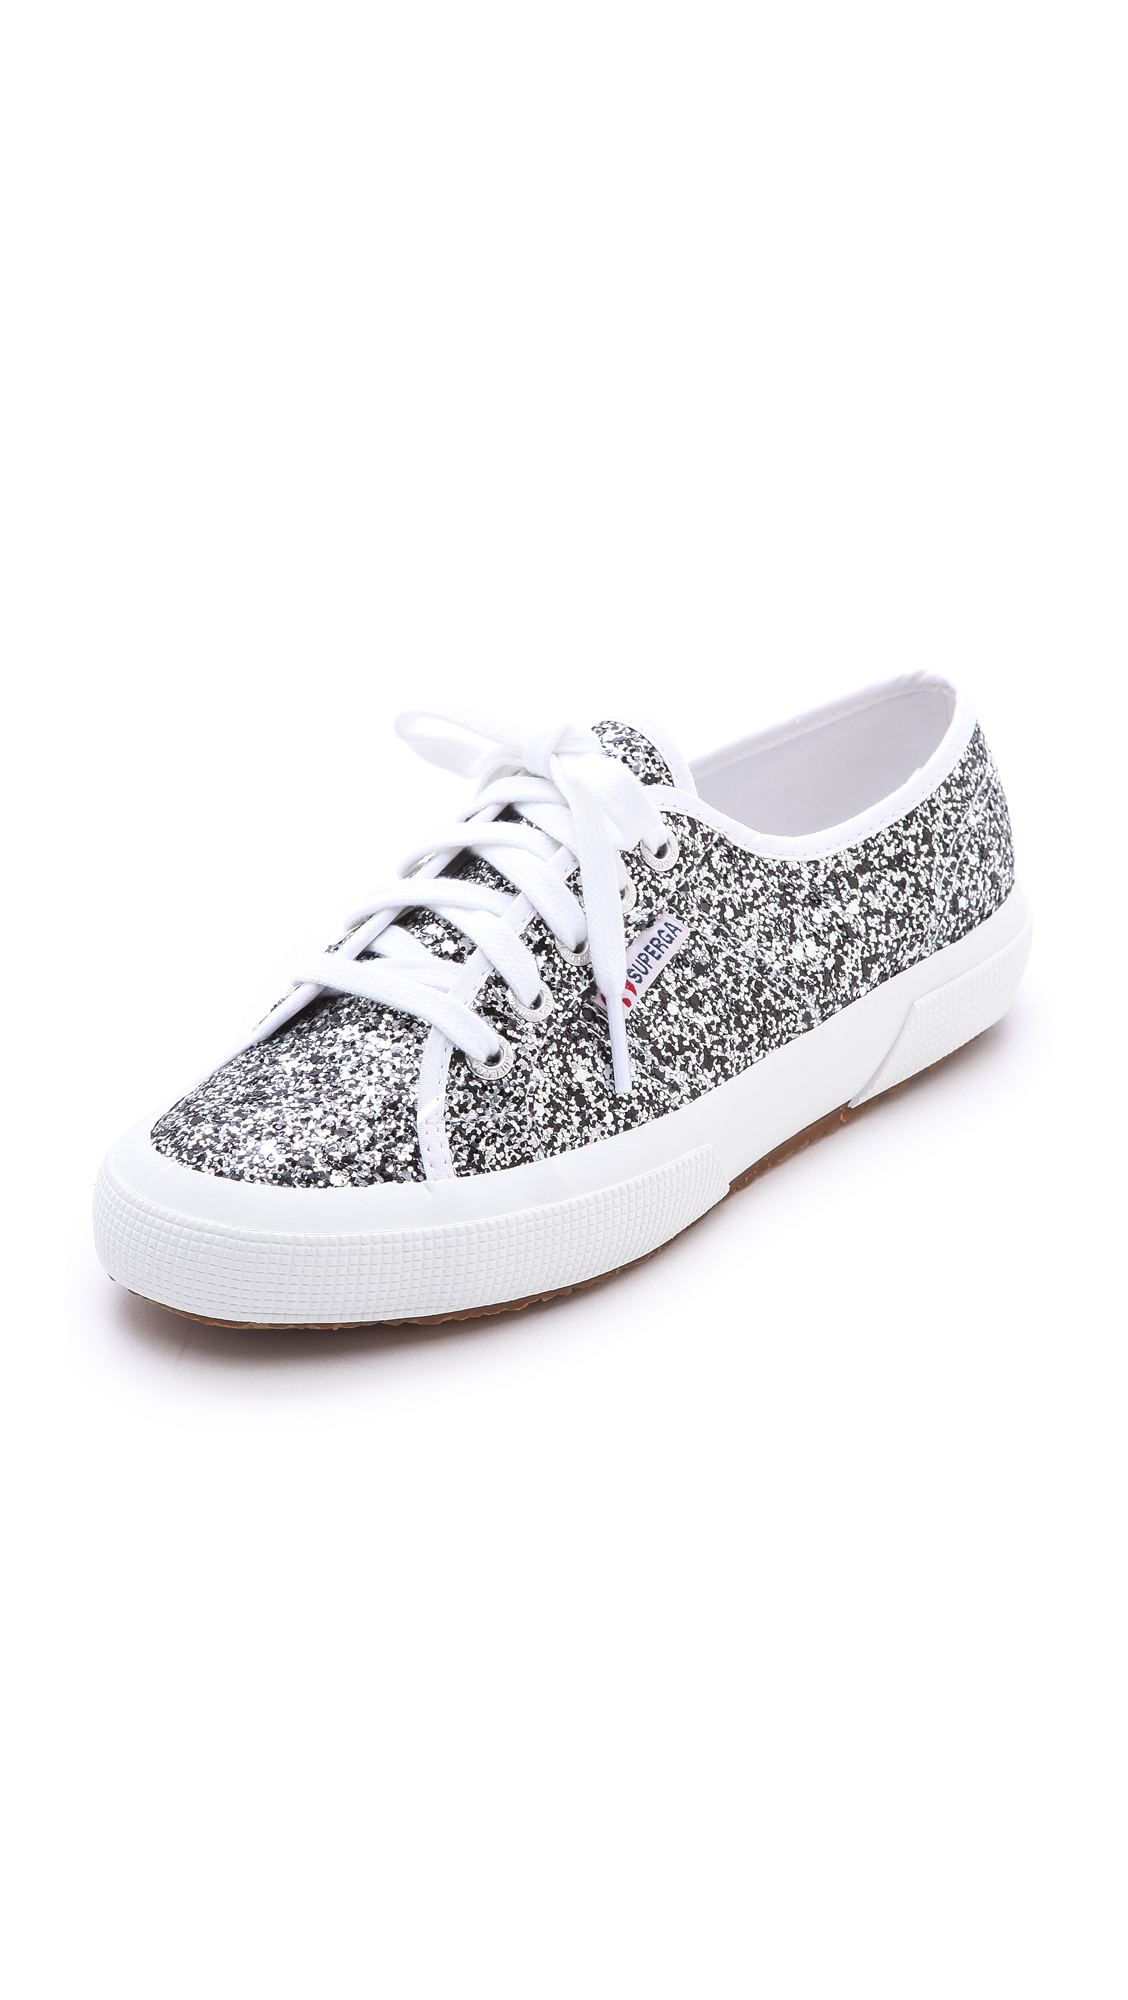 superga glitter sneakers multi in silver lyst. Black Bedroom Furniture Sets. Home Design Ideas